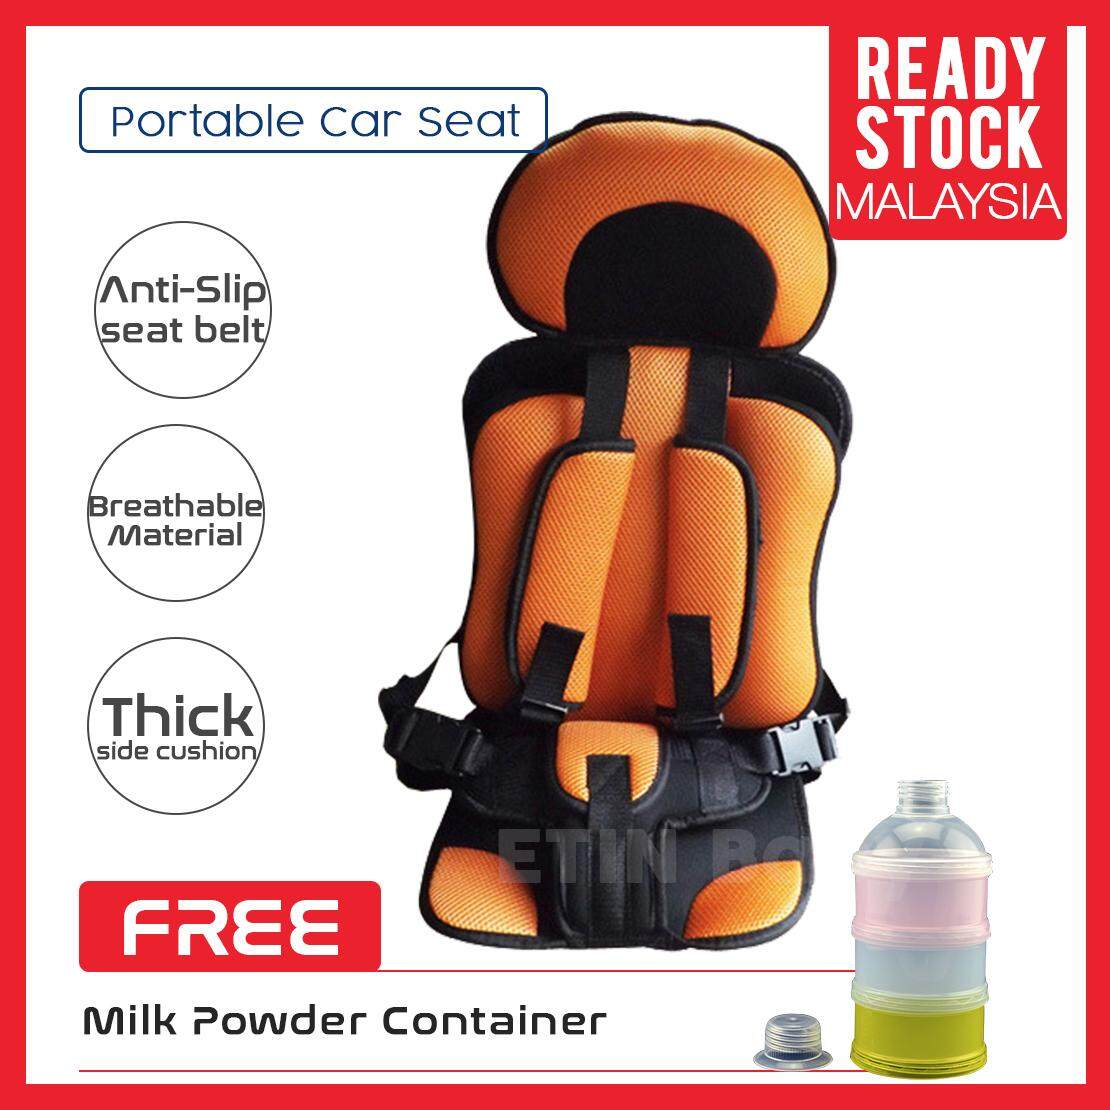 Portable Car Seat or Child Safety Cushion for 6month -4 years old